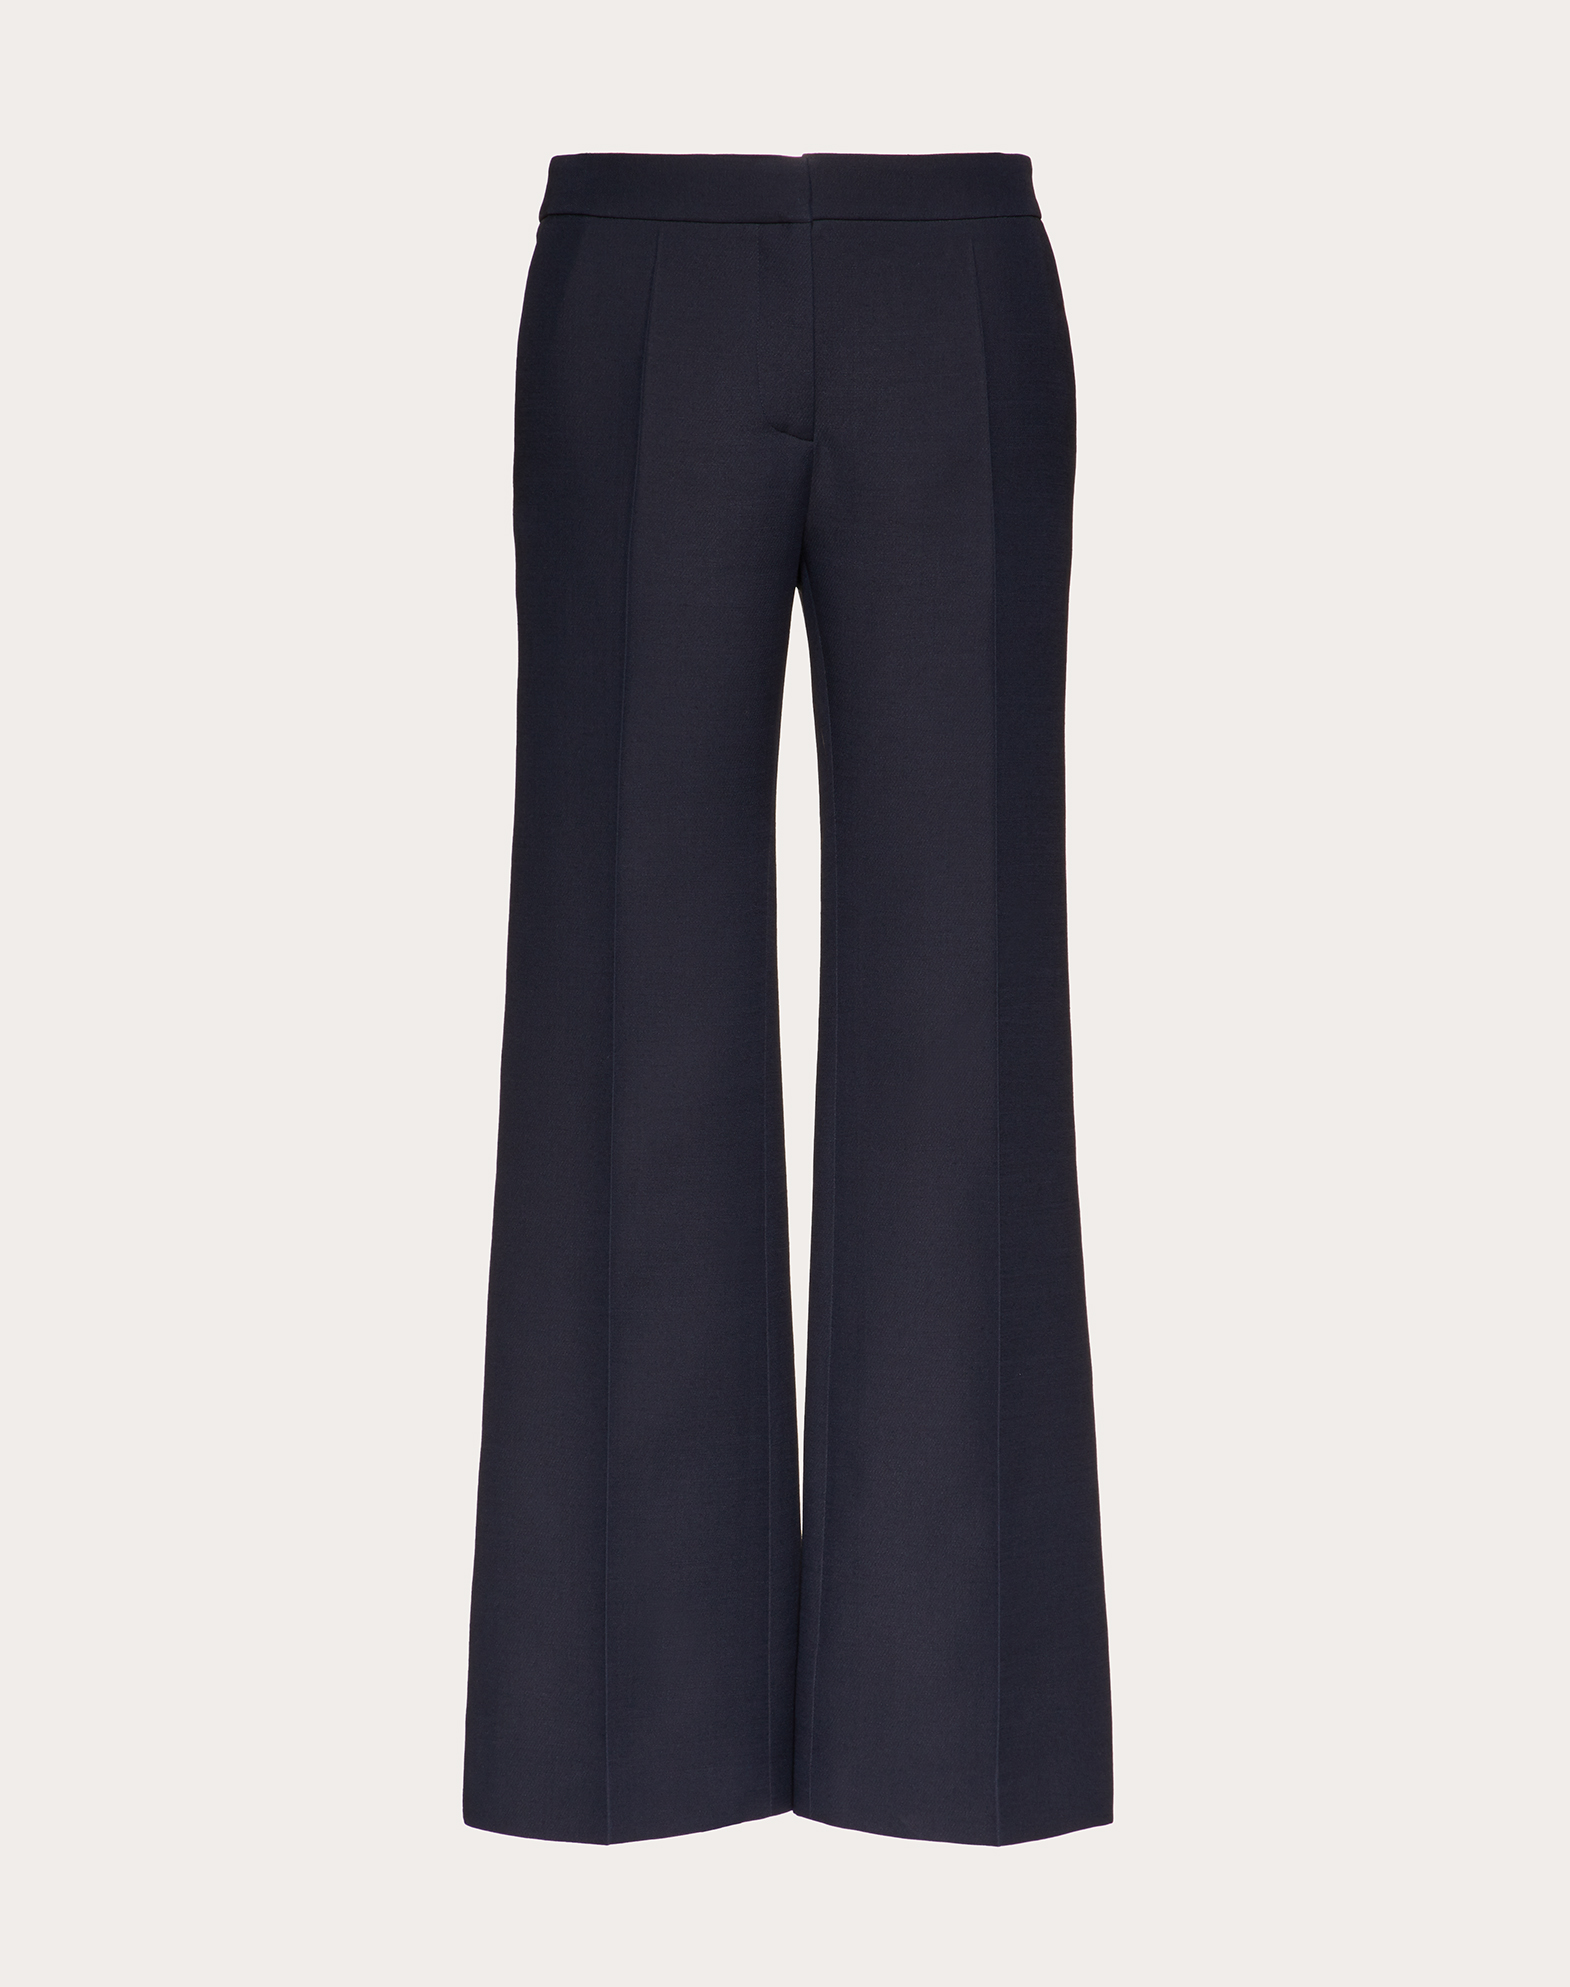 Crepe Couture Pants